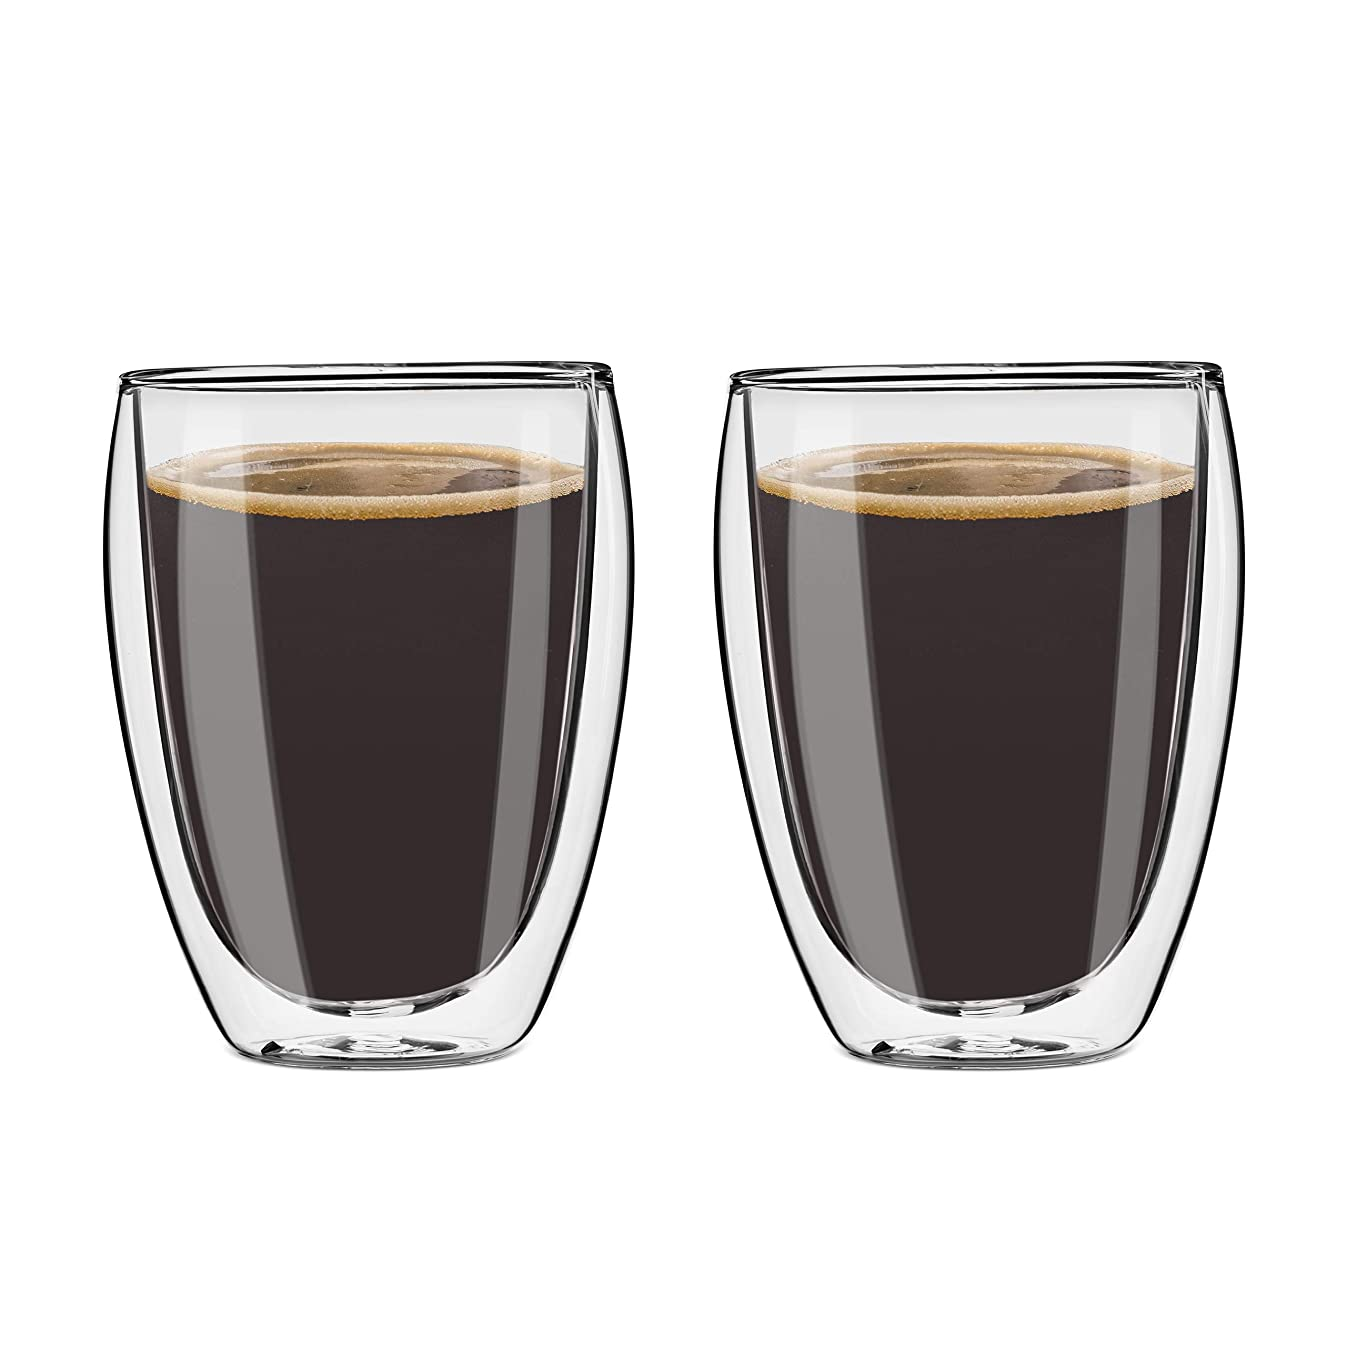 Style Setter Double Wall Tumblers – Set of 2 11.5oz Insulated Home Barware Glasses for Cold Drinks, Cocktails, Coffee, Hot Tea & Other Beverages – Unique Gift Idea for Birthday, Holiday & More